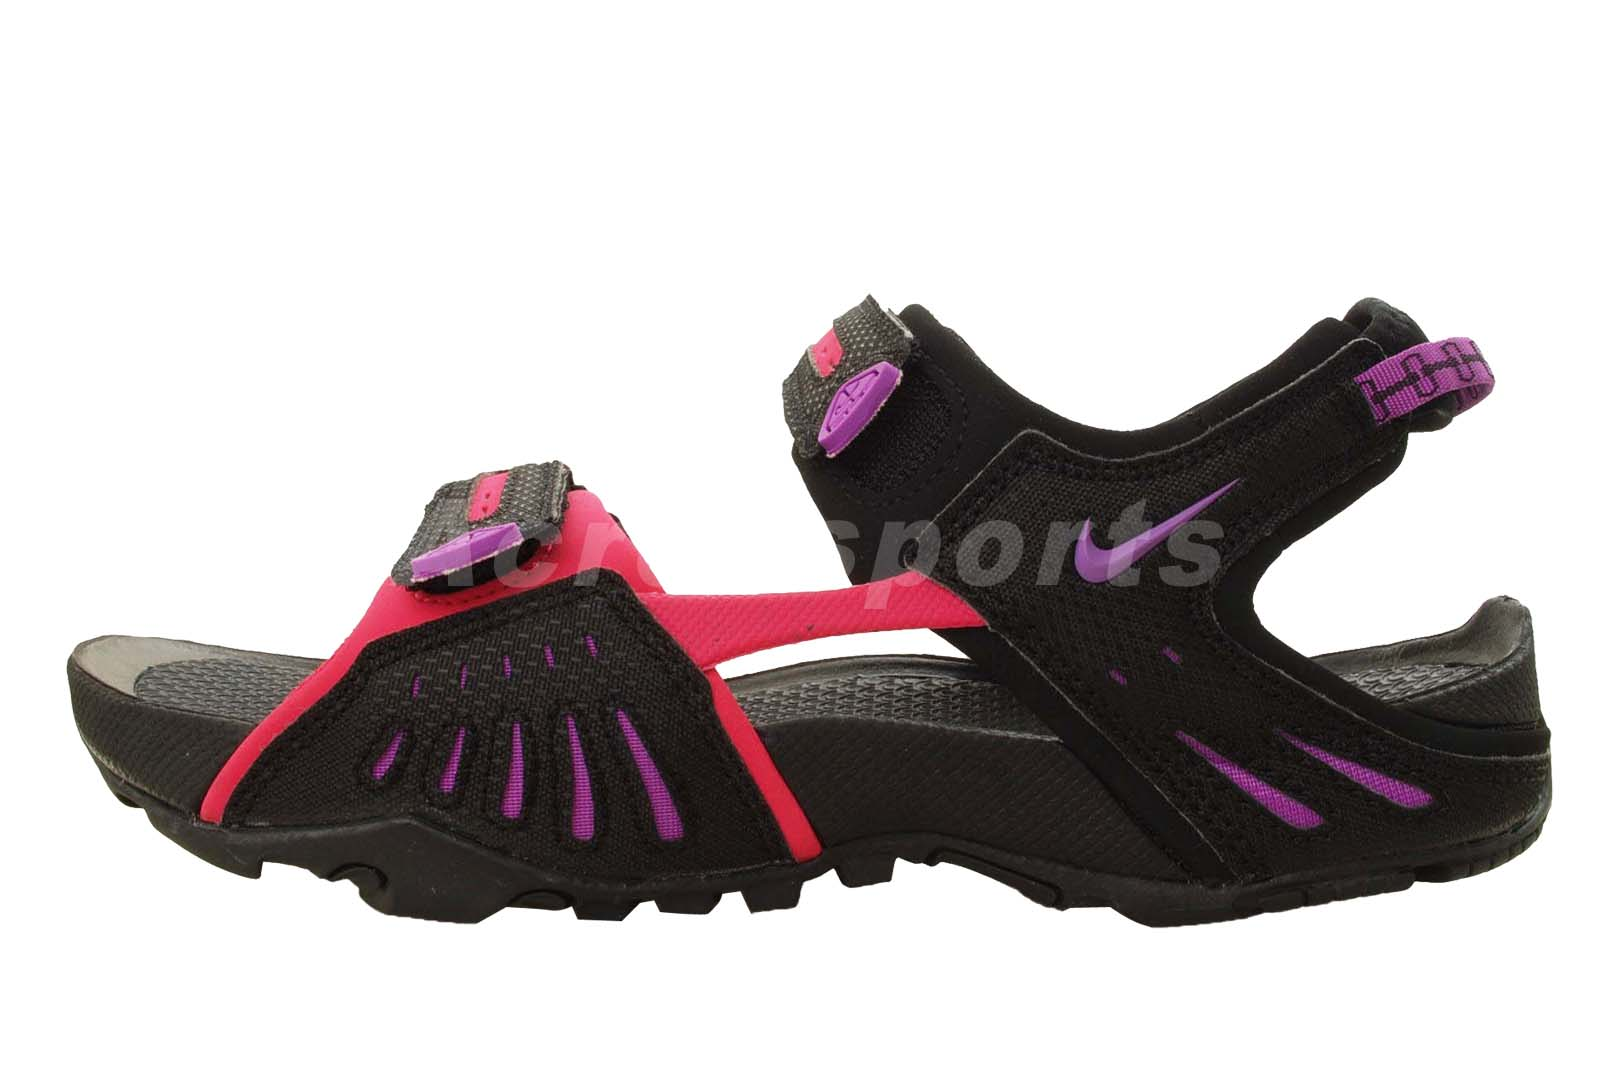 Luxury Nike Acg Sandals Women39s  Dovalina Builders